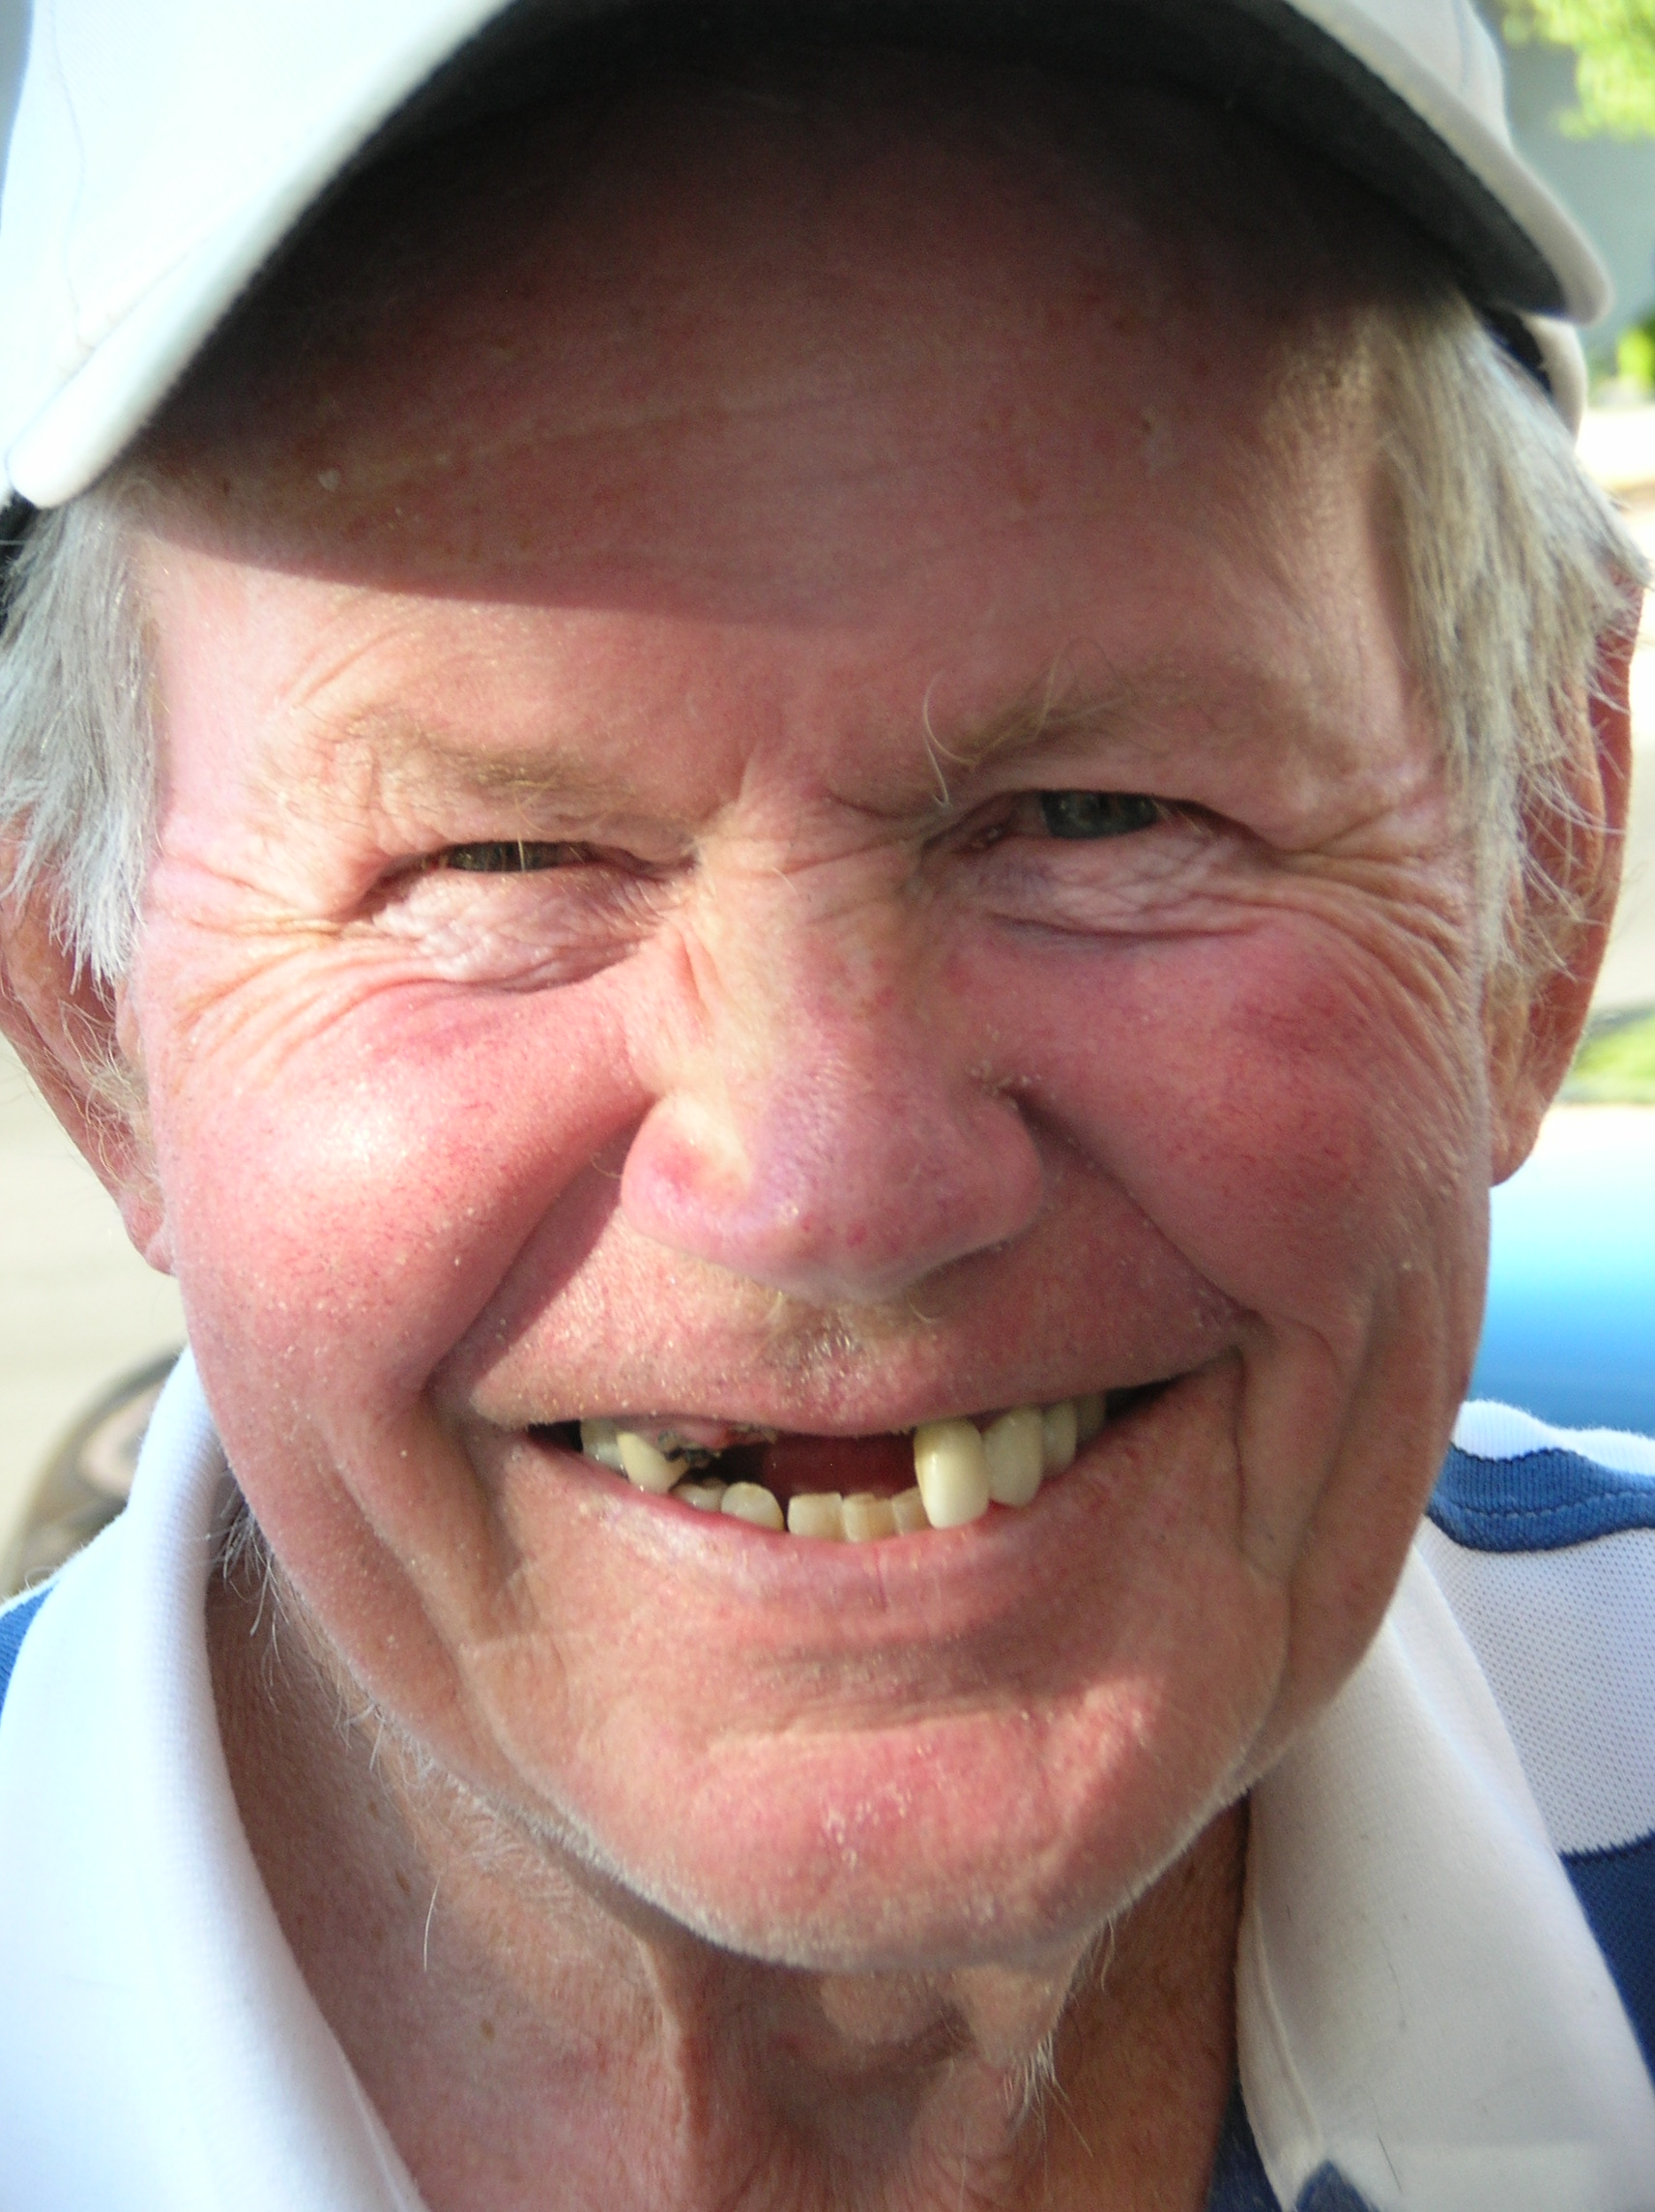 Toothless Lew, Funny, Grin, Male, Man, HQ Photo